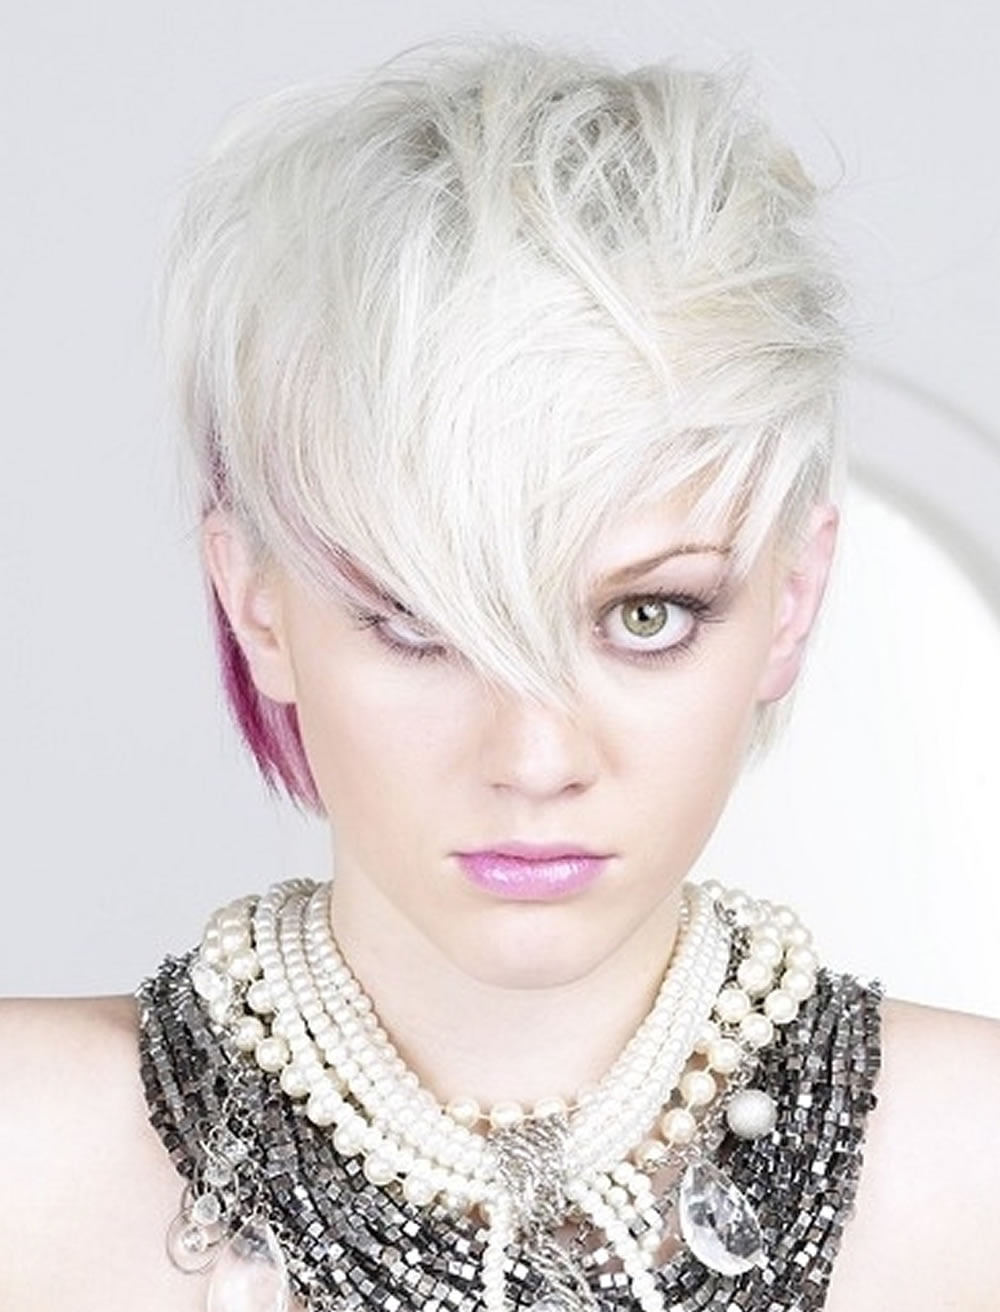 37 Amazing Short Hair Haircuts For Girls 2018 2019 Page